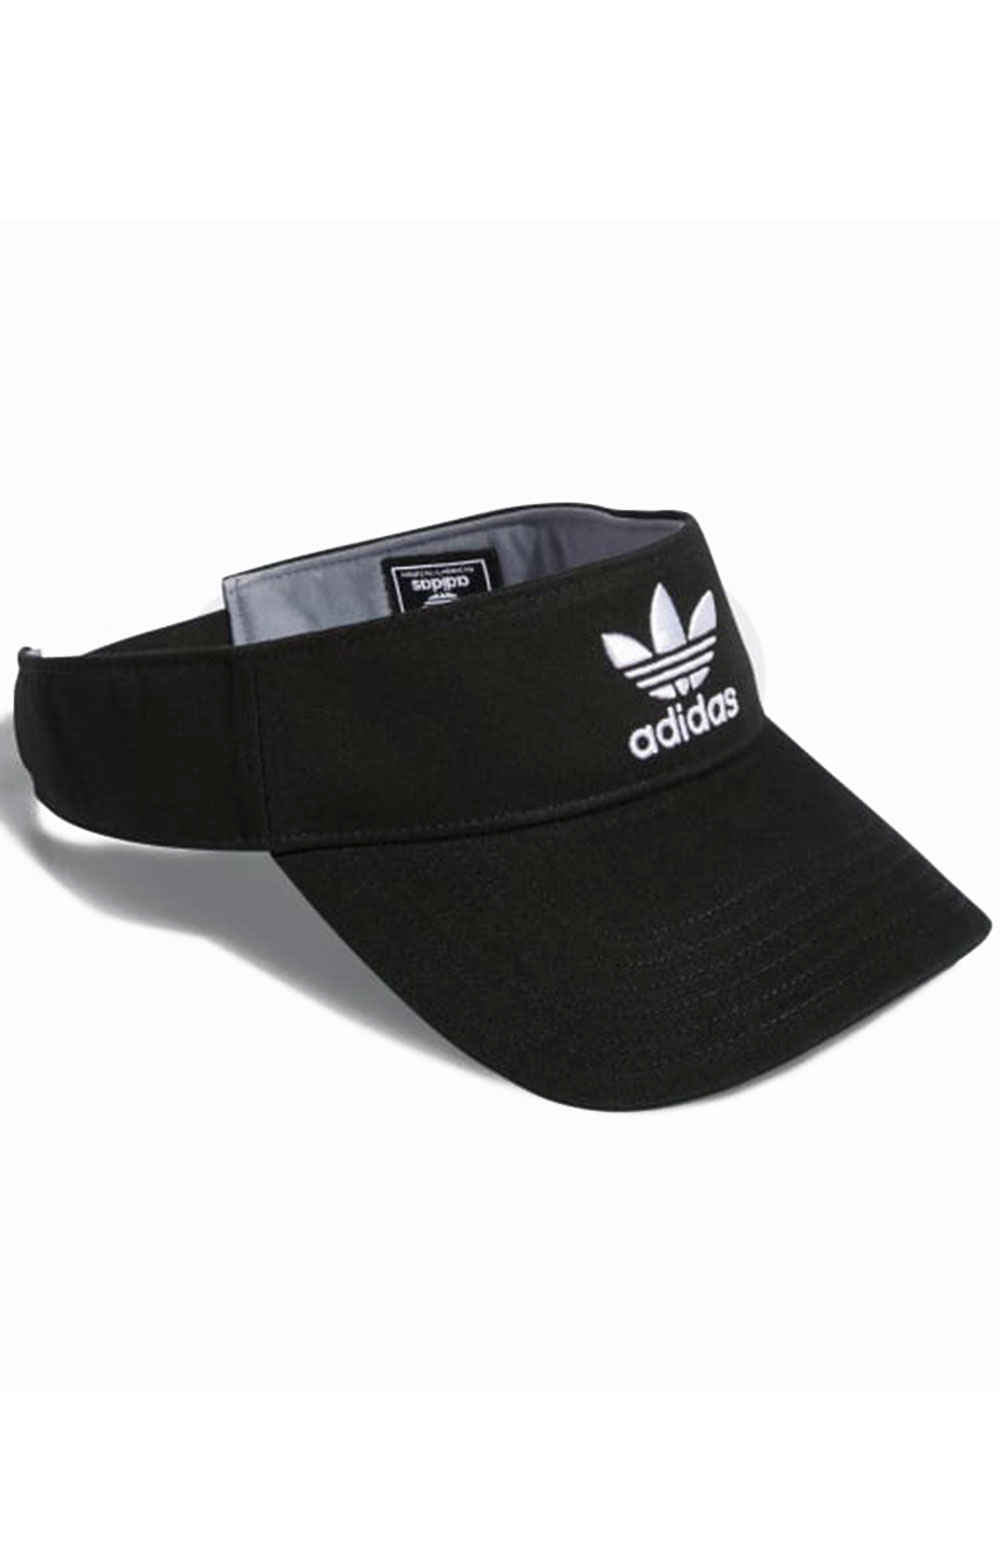 Originals Twill Visor - Black/White 2